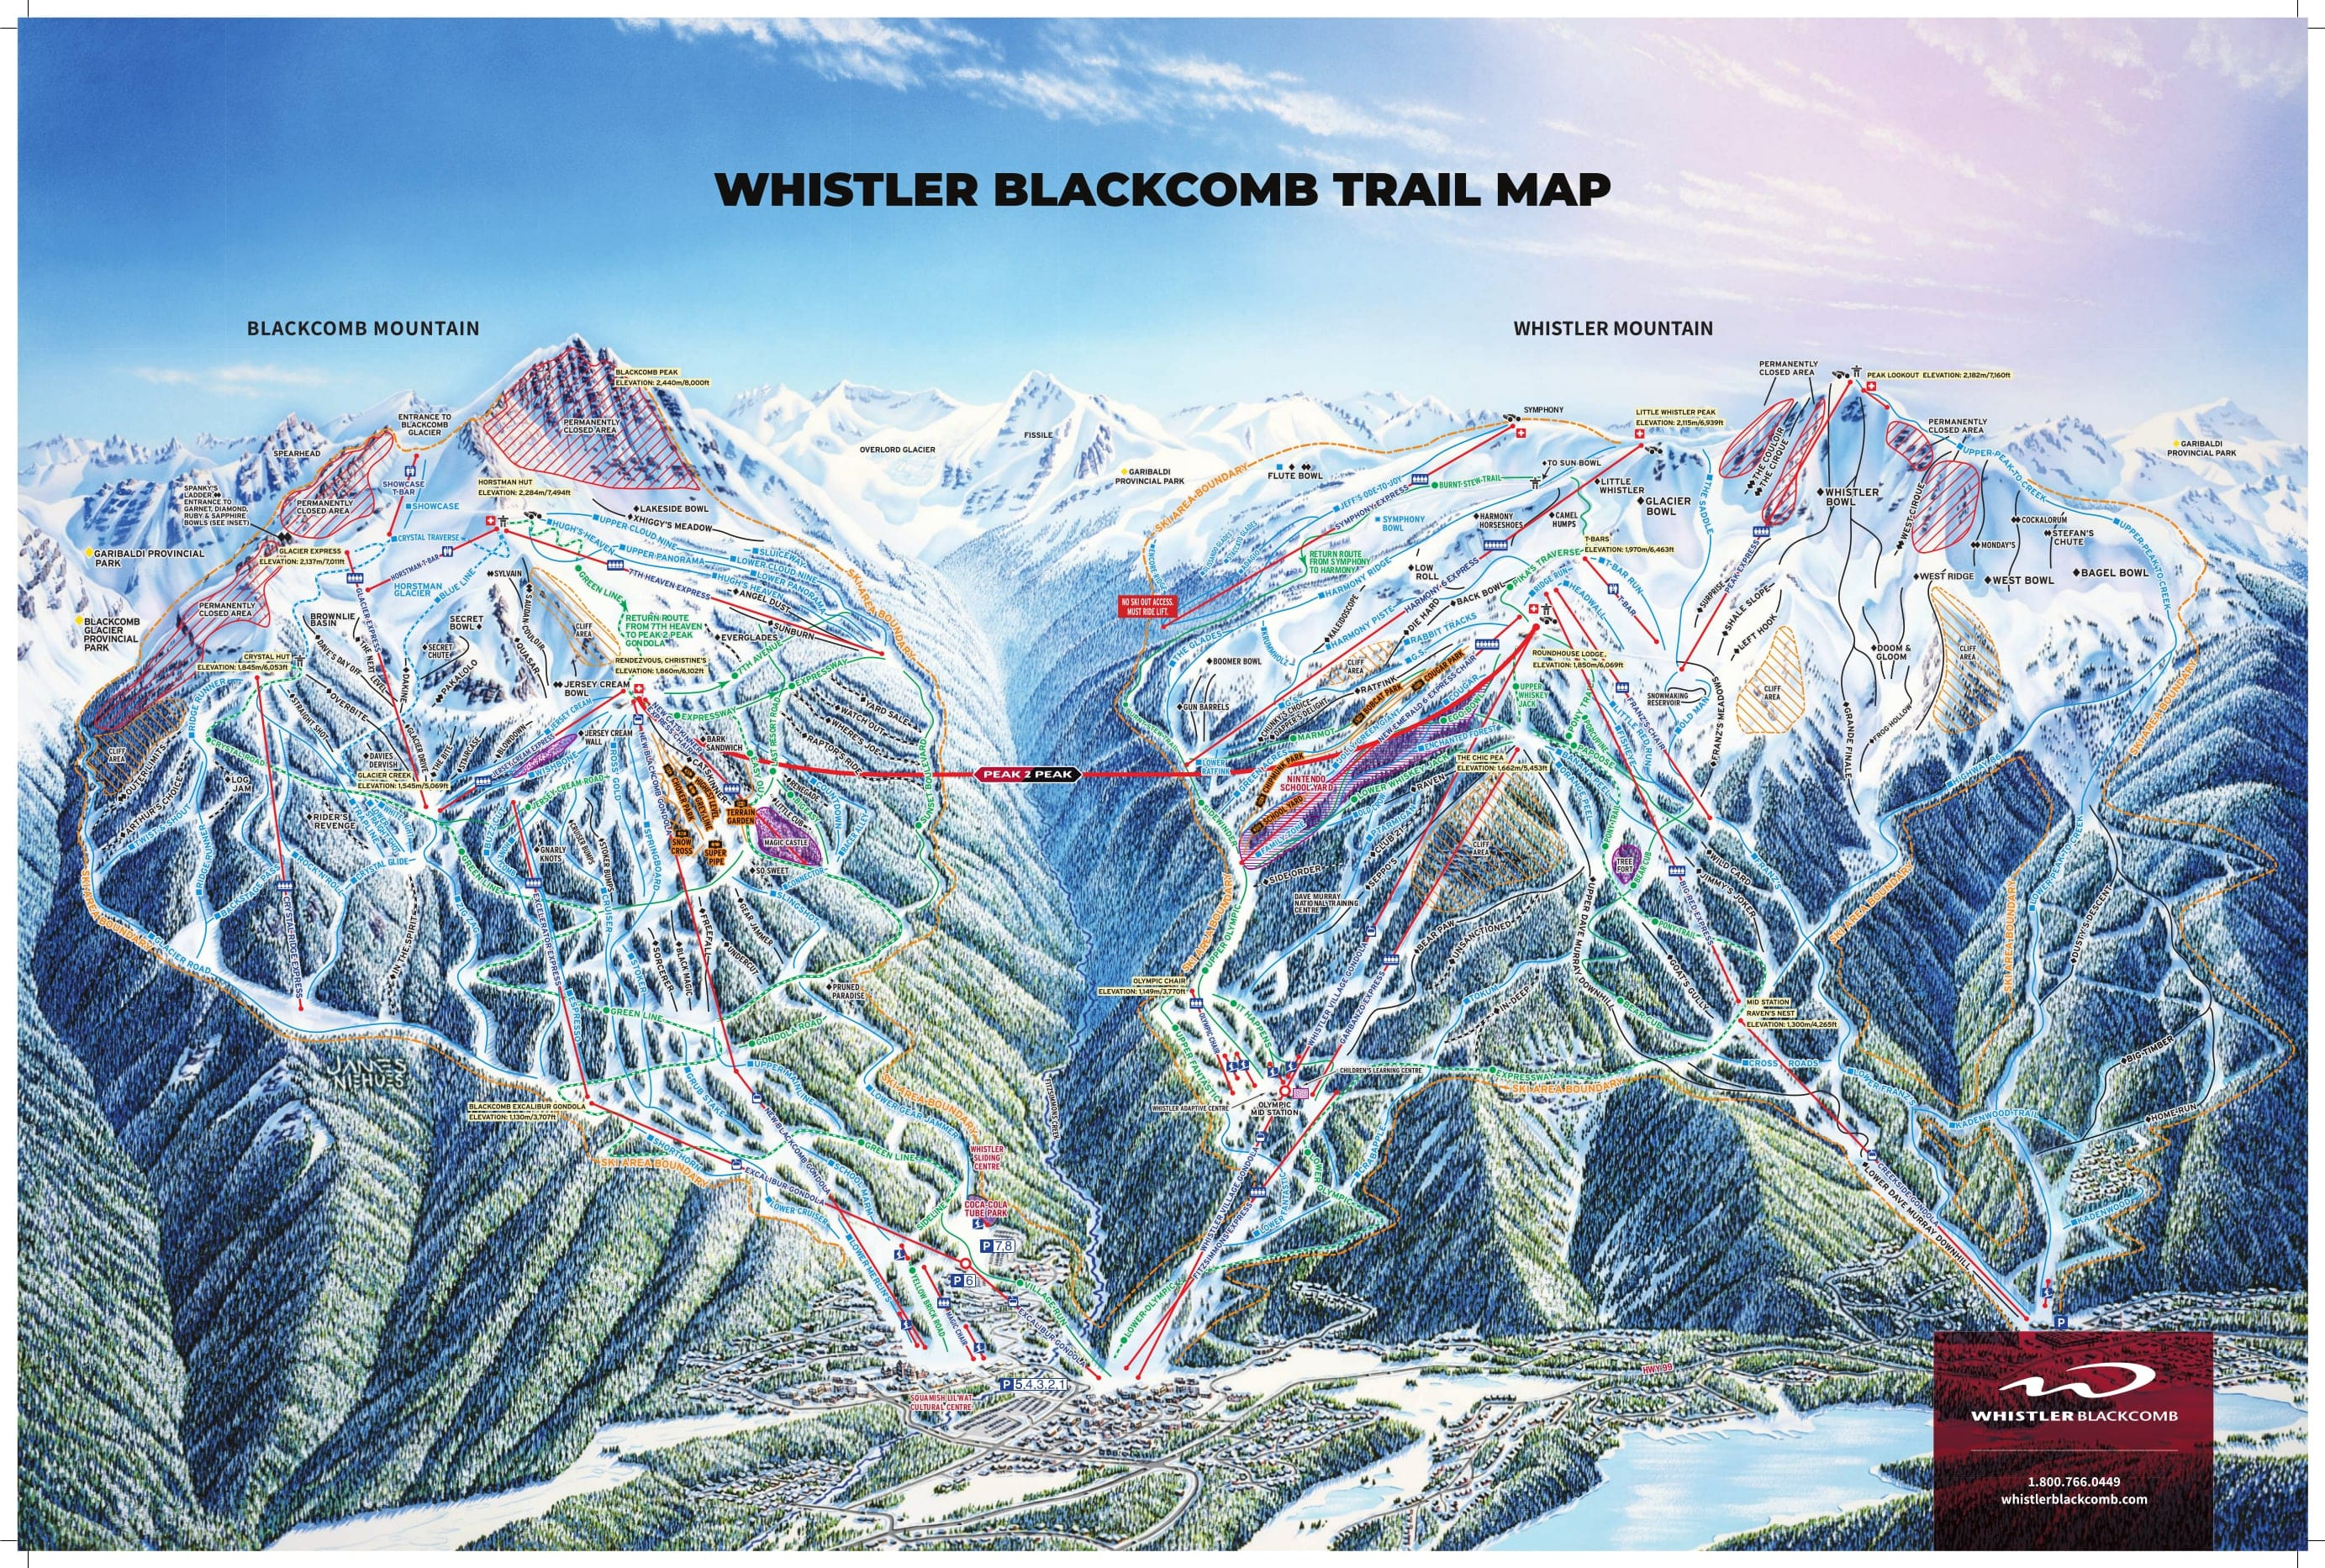 Whistler Blackcomb Piste Map – Free downloadable piste maps. on map airports in canada, map national parks in canada, map churches in canada, map mountains in canada, map golf courses in canada, map cities in canada, map british columbia,